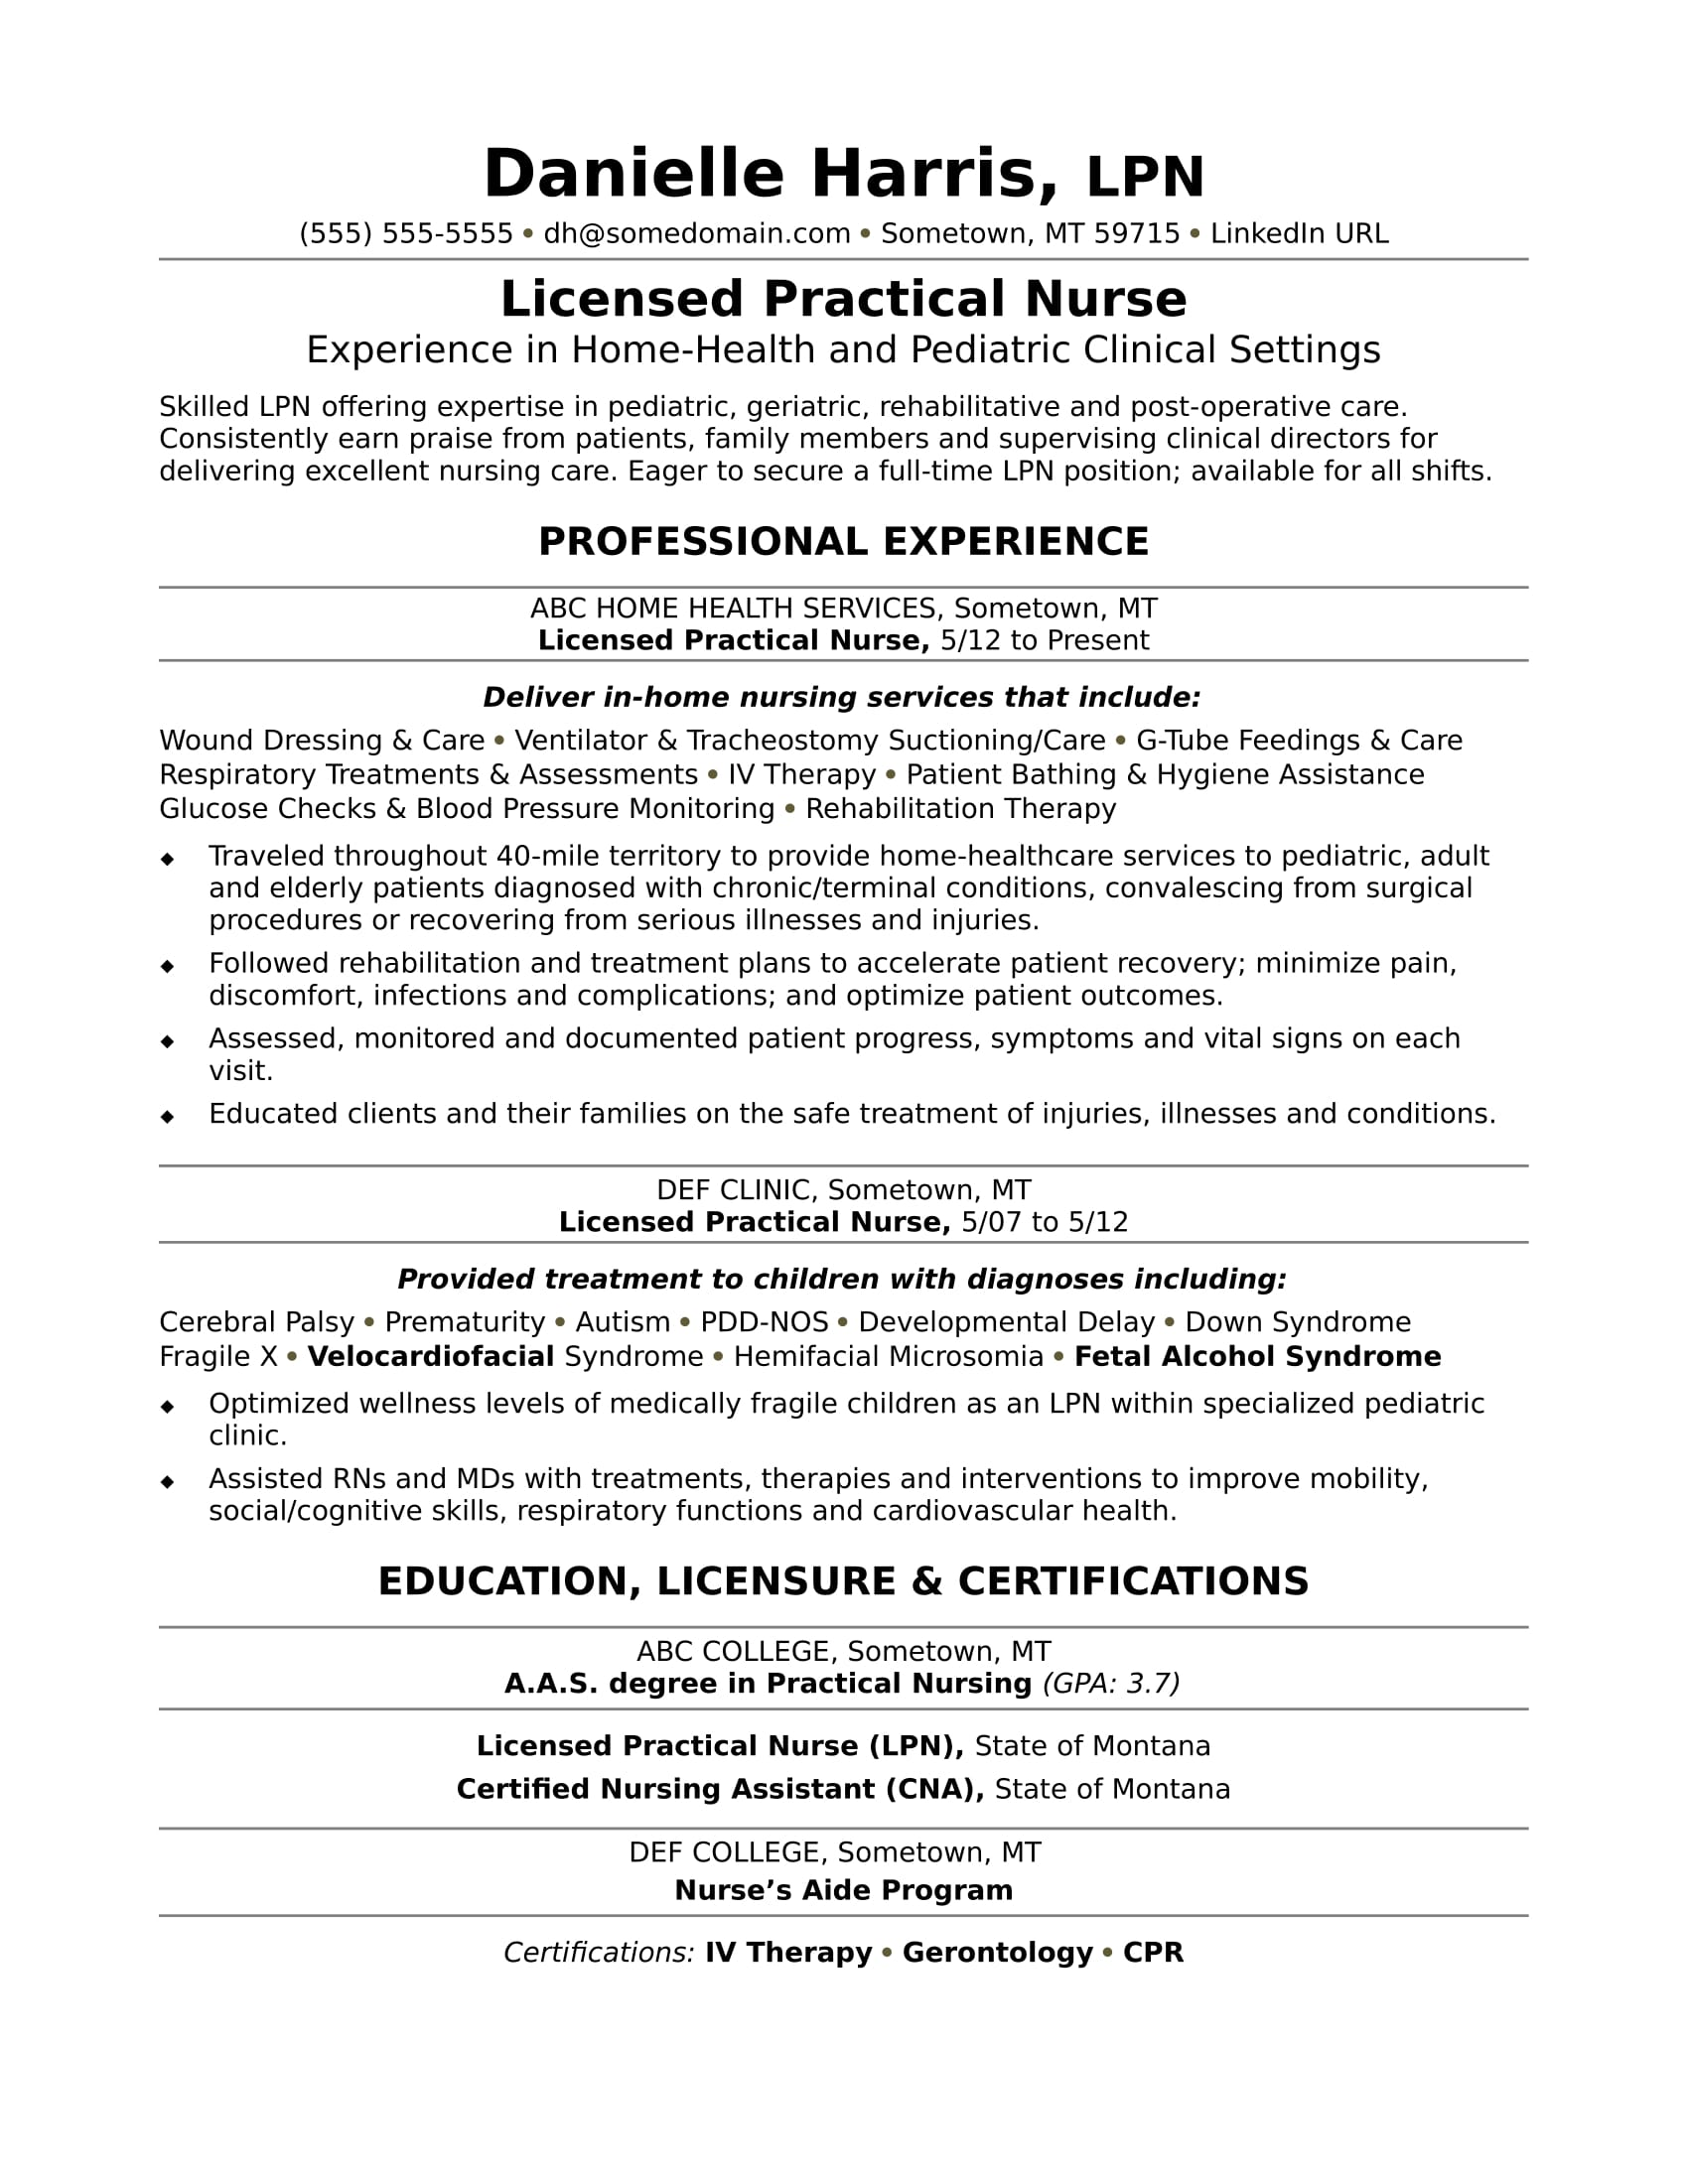 Licensed Practical Nurse Resume Sample | Monster.com